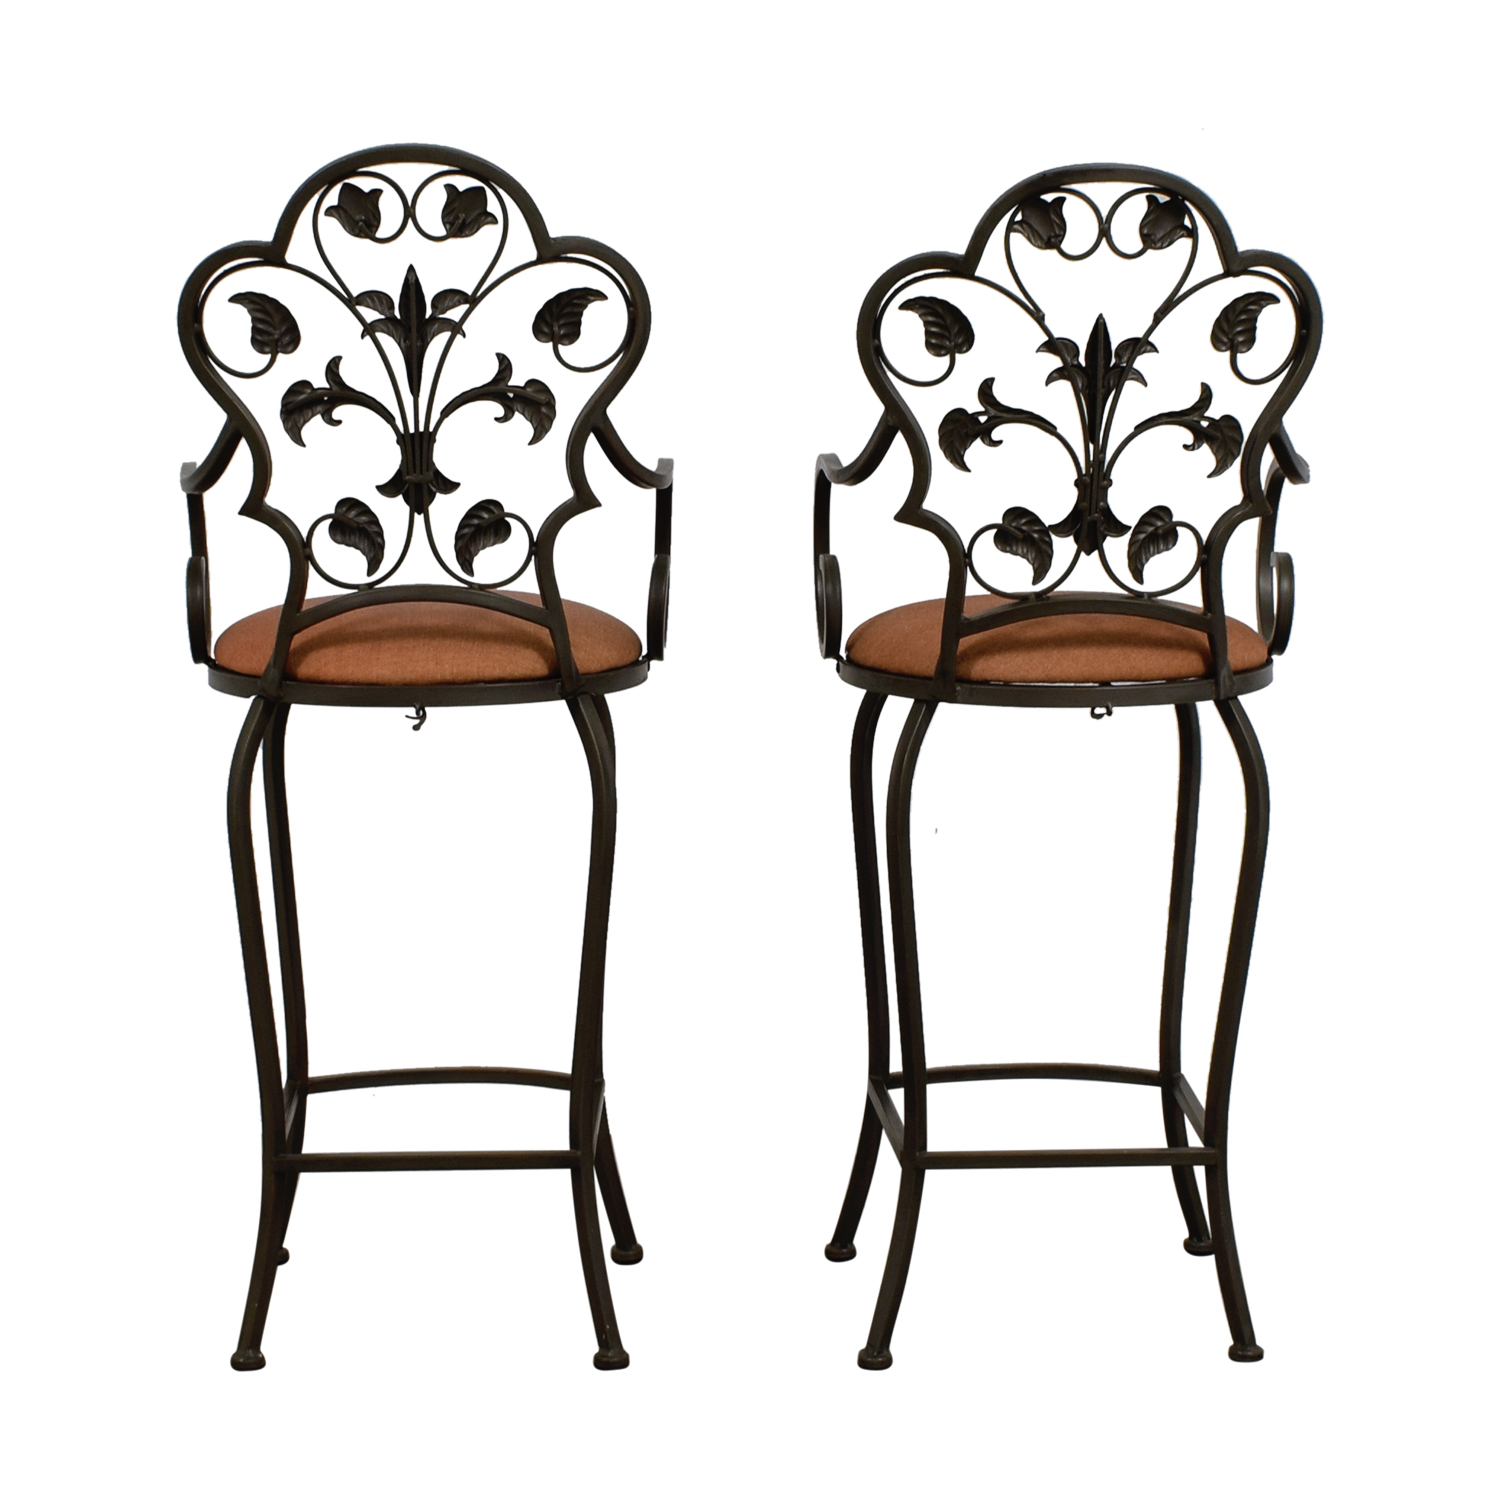 Scrolled Metal Folding Back Bar Stools on sale